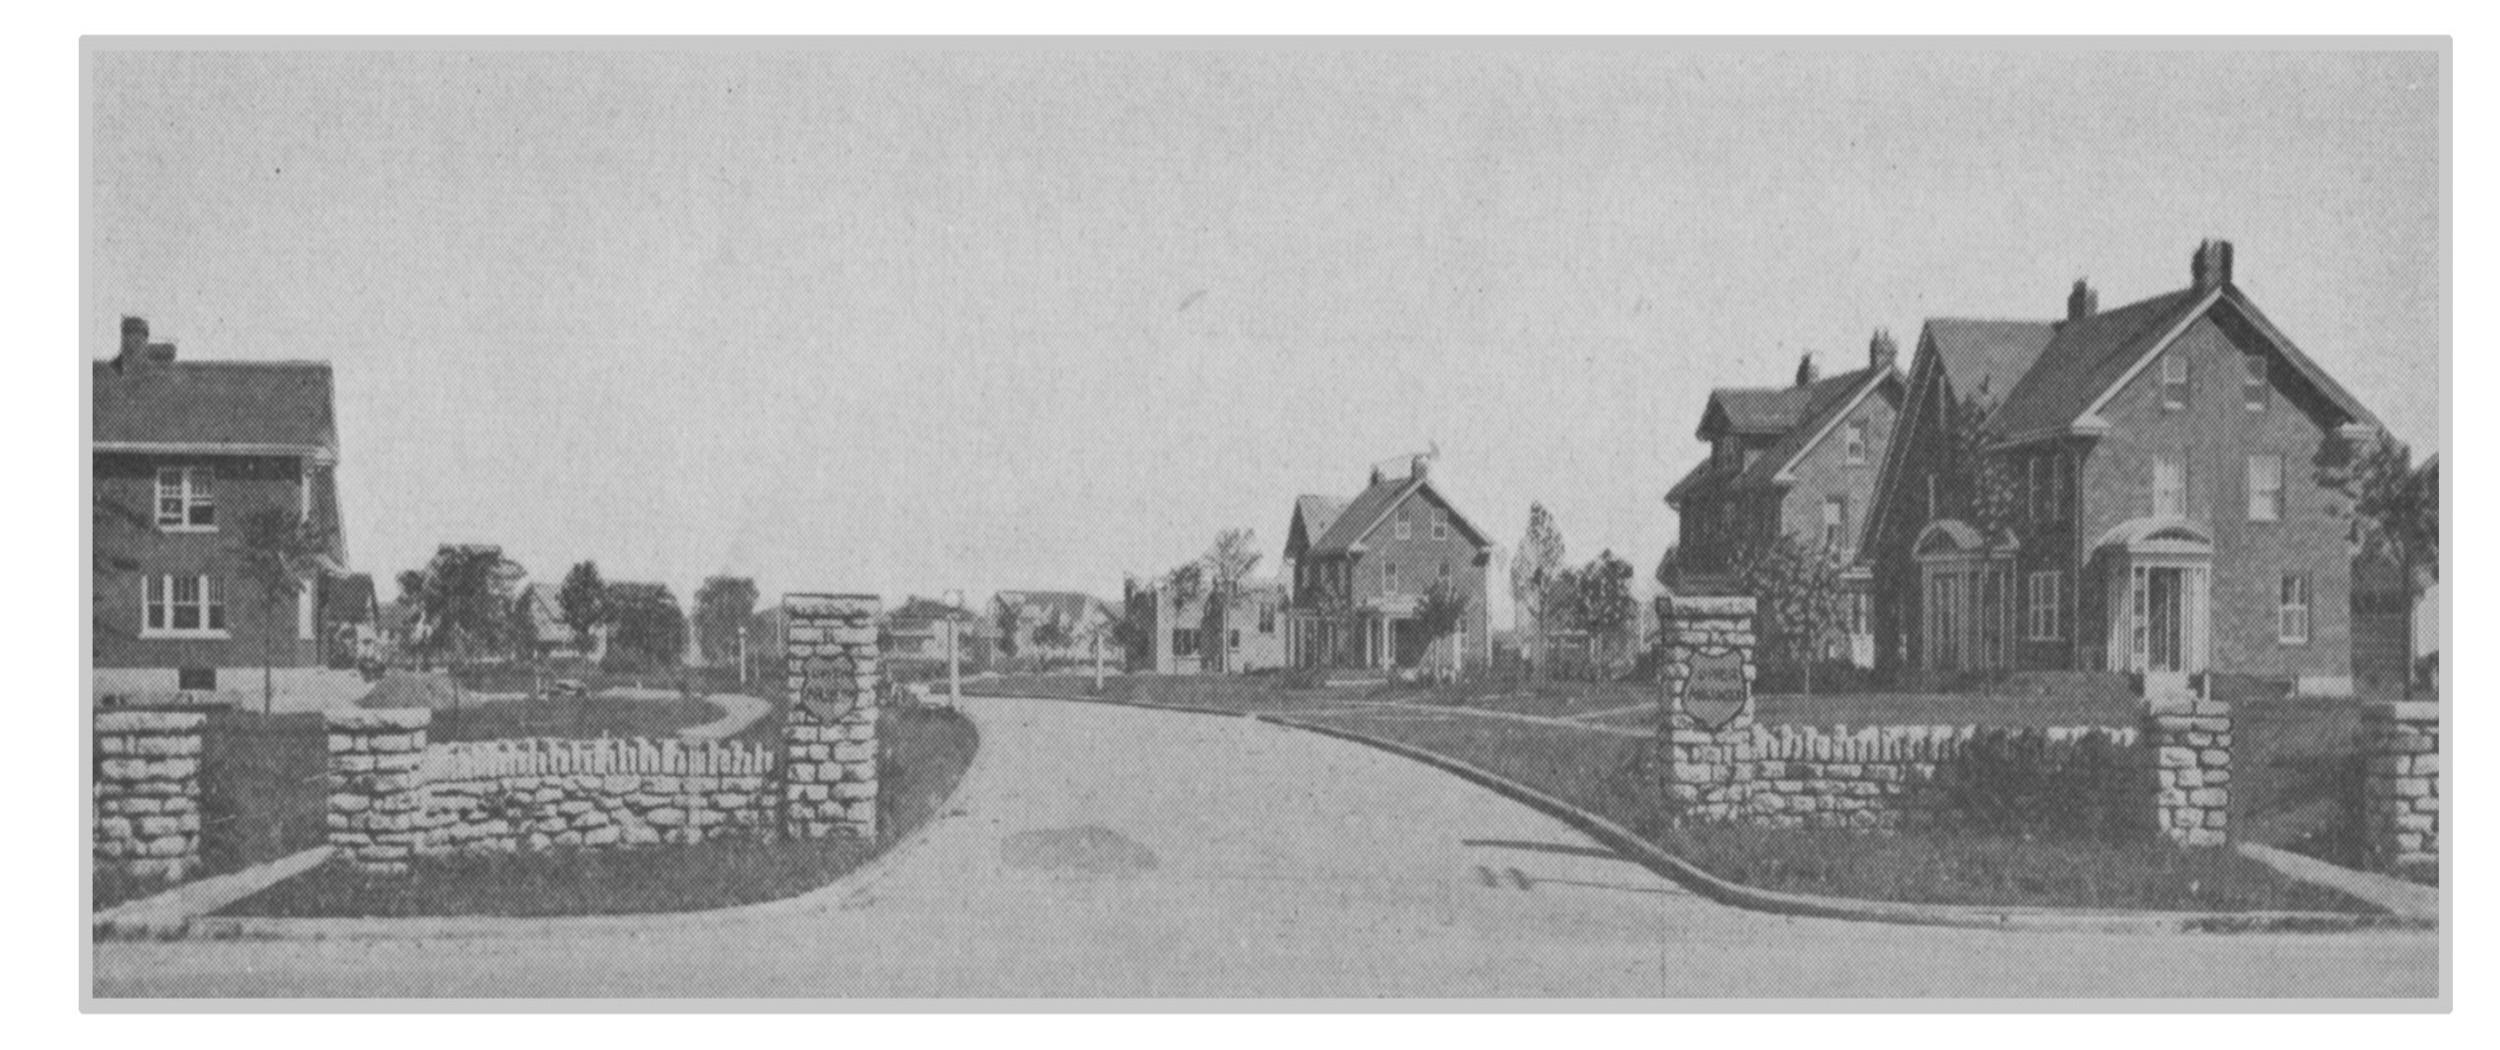 Entrance to Upper Arlington at Cambridge & Fifth Avenues in 1918. (Courtesy of UA Archives.)